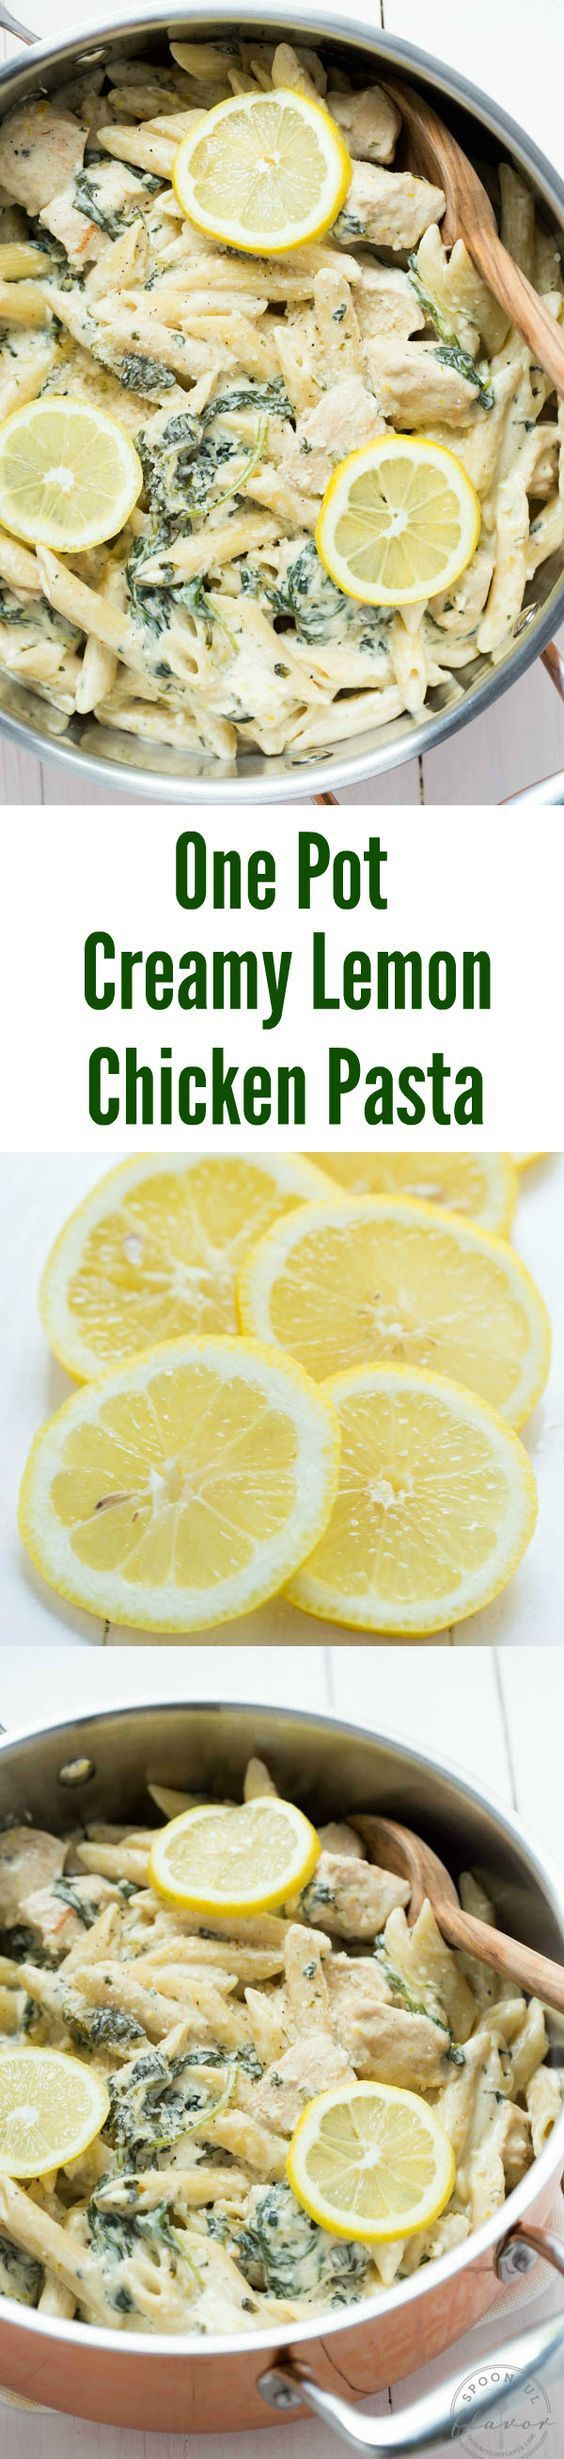 One Pot Creamy Lemon Chicken Pasta with Baby Kale Recipe | Spoonful of Flavor - The Best Easy One Pot Family Dinner Recipes #onepot #onepotmeals #onepotrecipes #onepotchicken #lemonchickenpasta